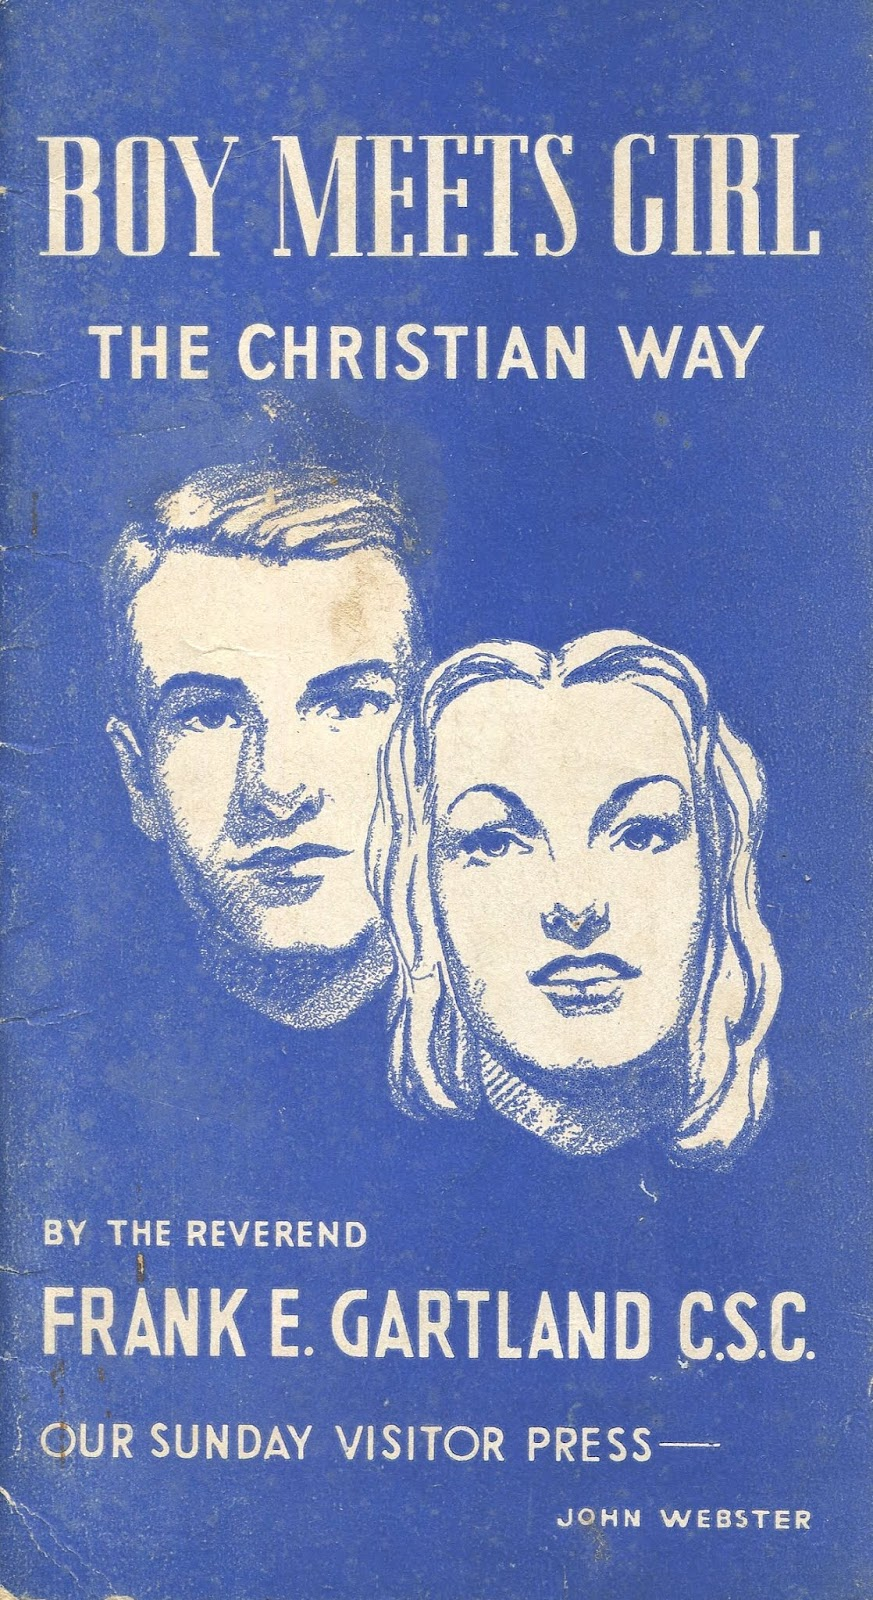 old time religion by Jim Linderman